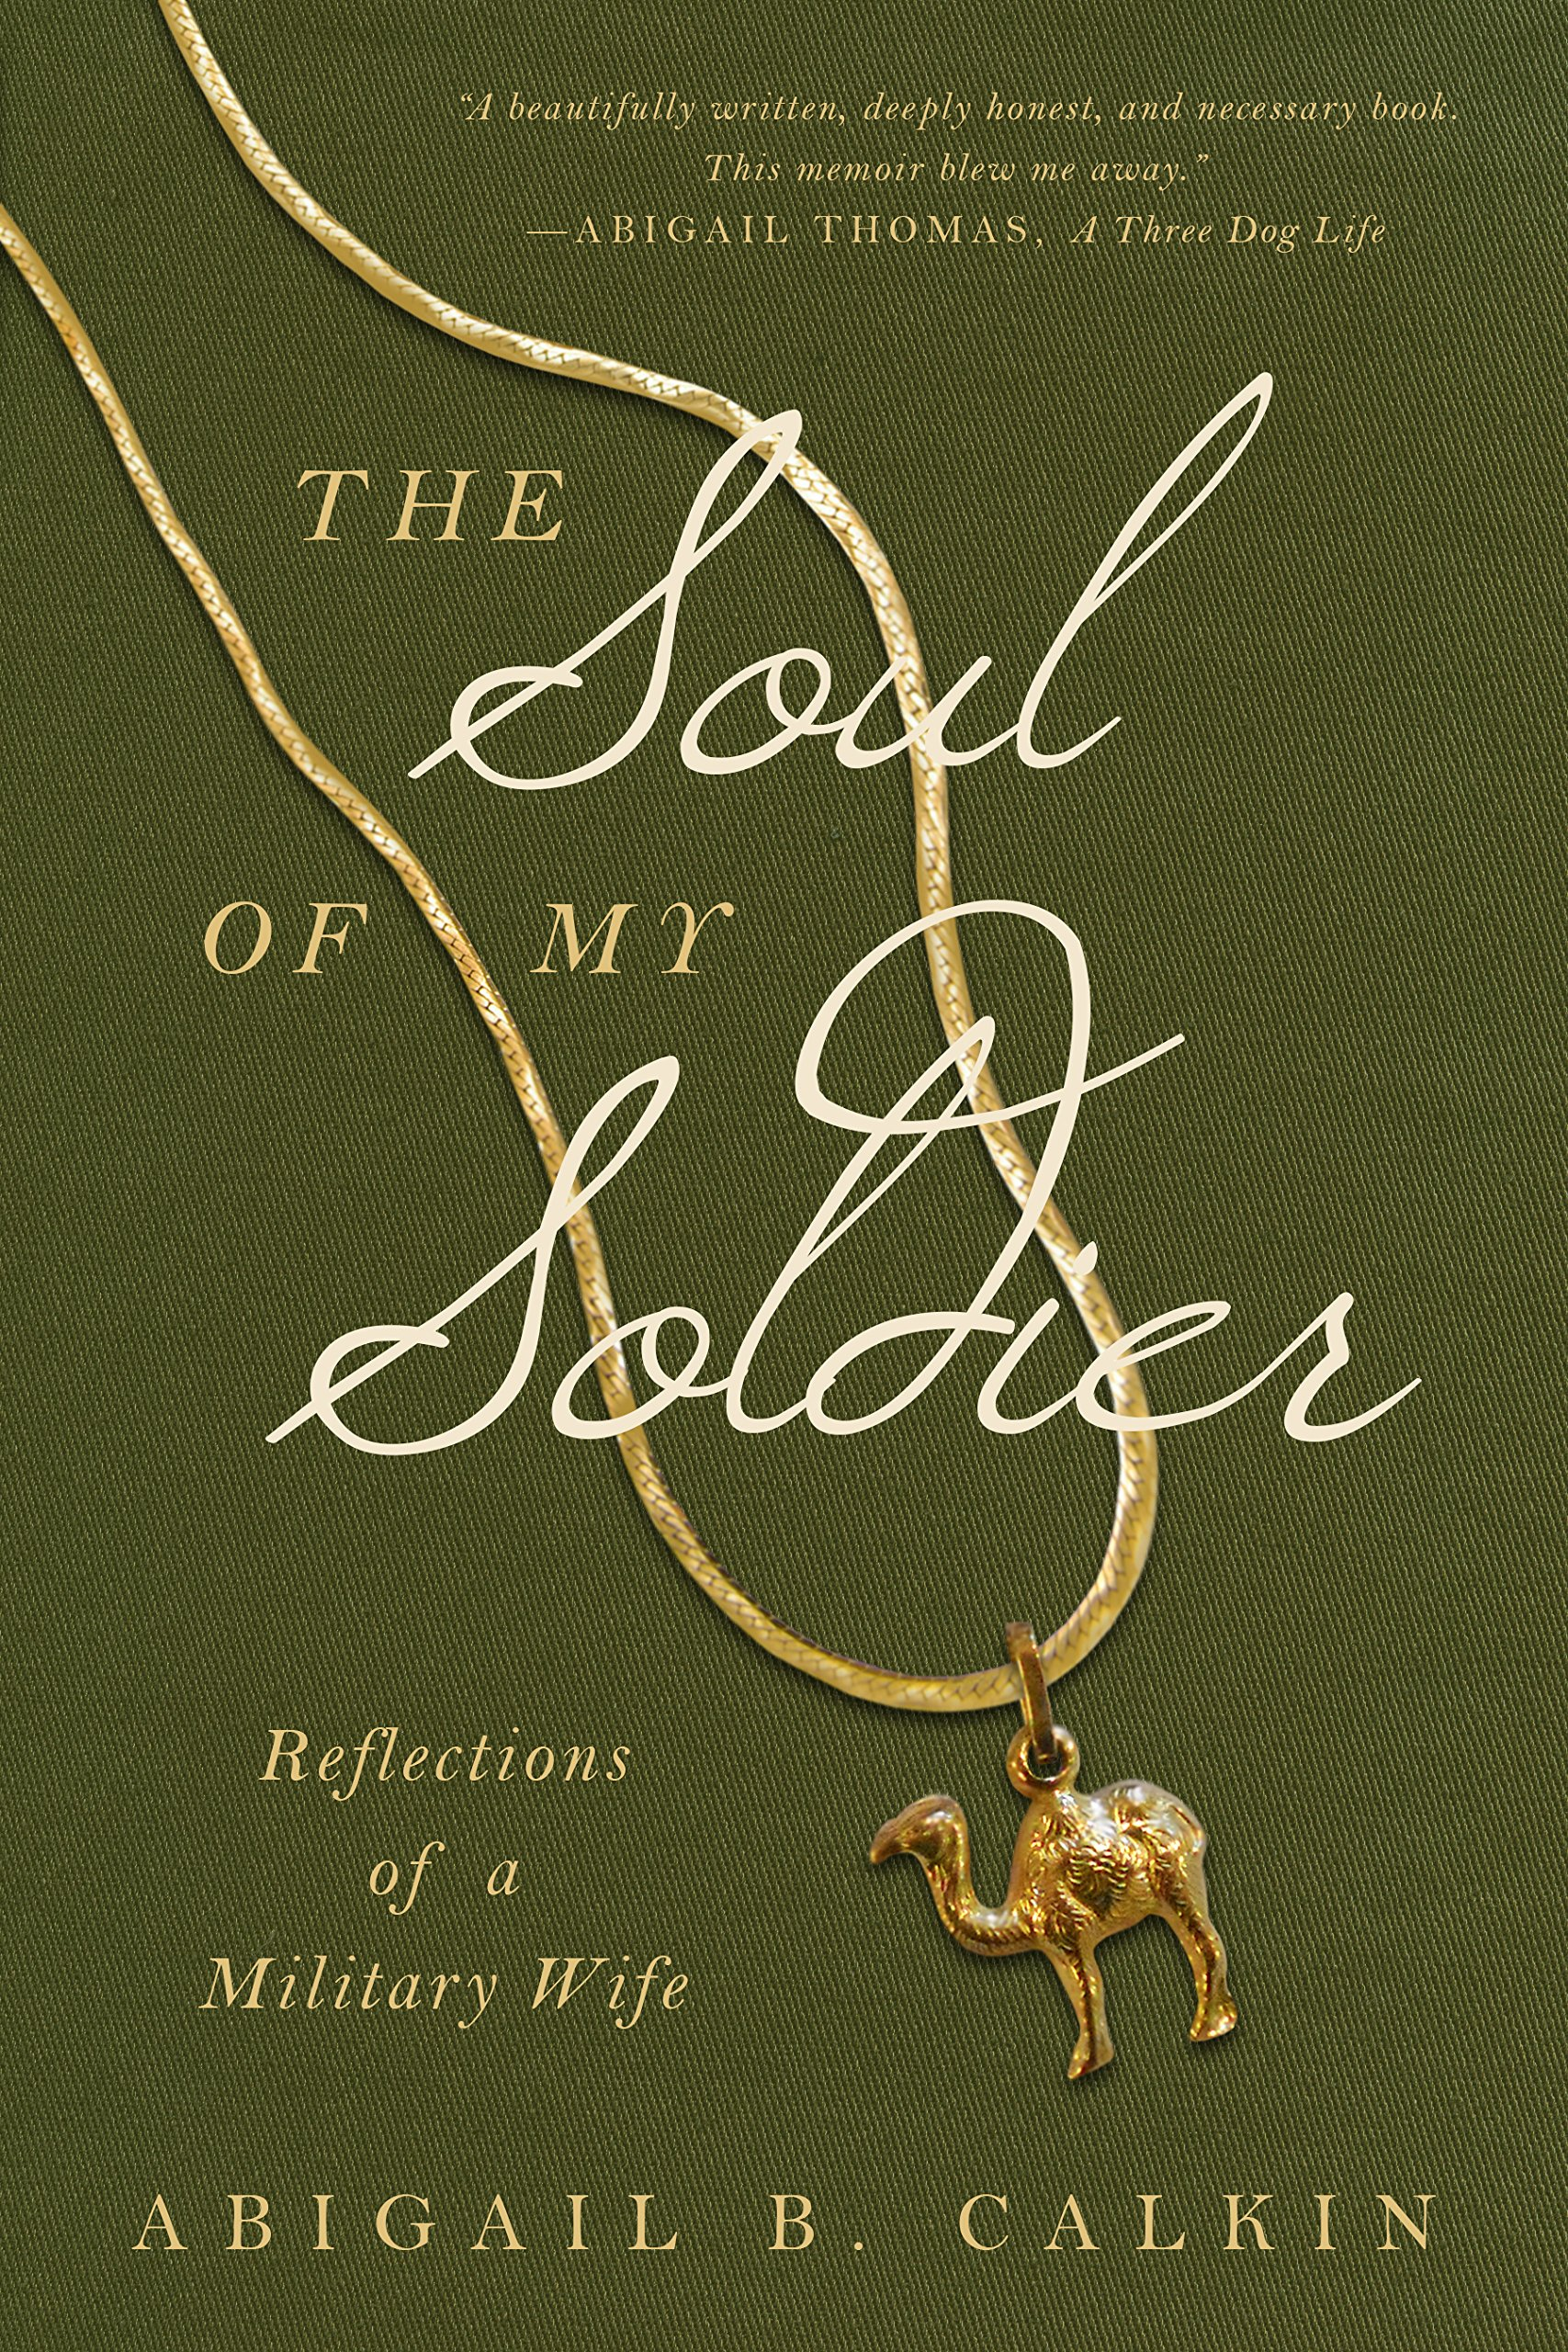 The Soul of My Soldier: Reflections of a Military Wife pdf epub